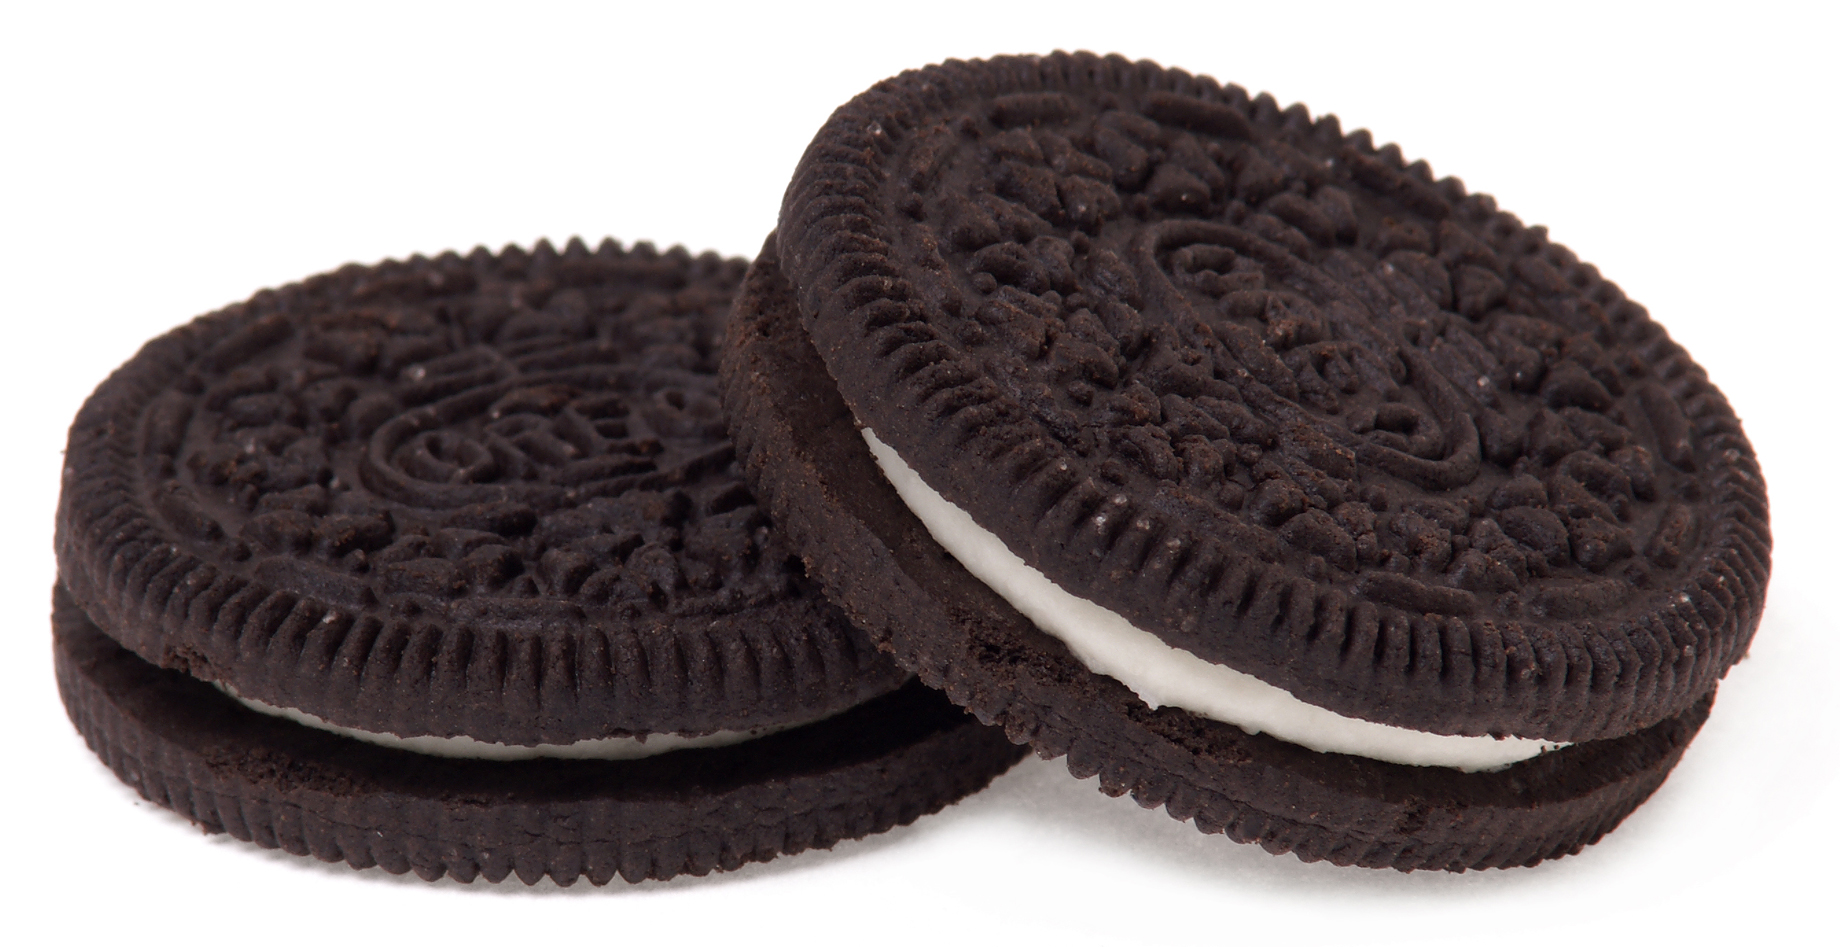 Foodie Tales » I used to eat Oreo Cookies for a living ...